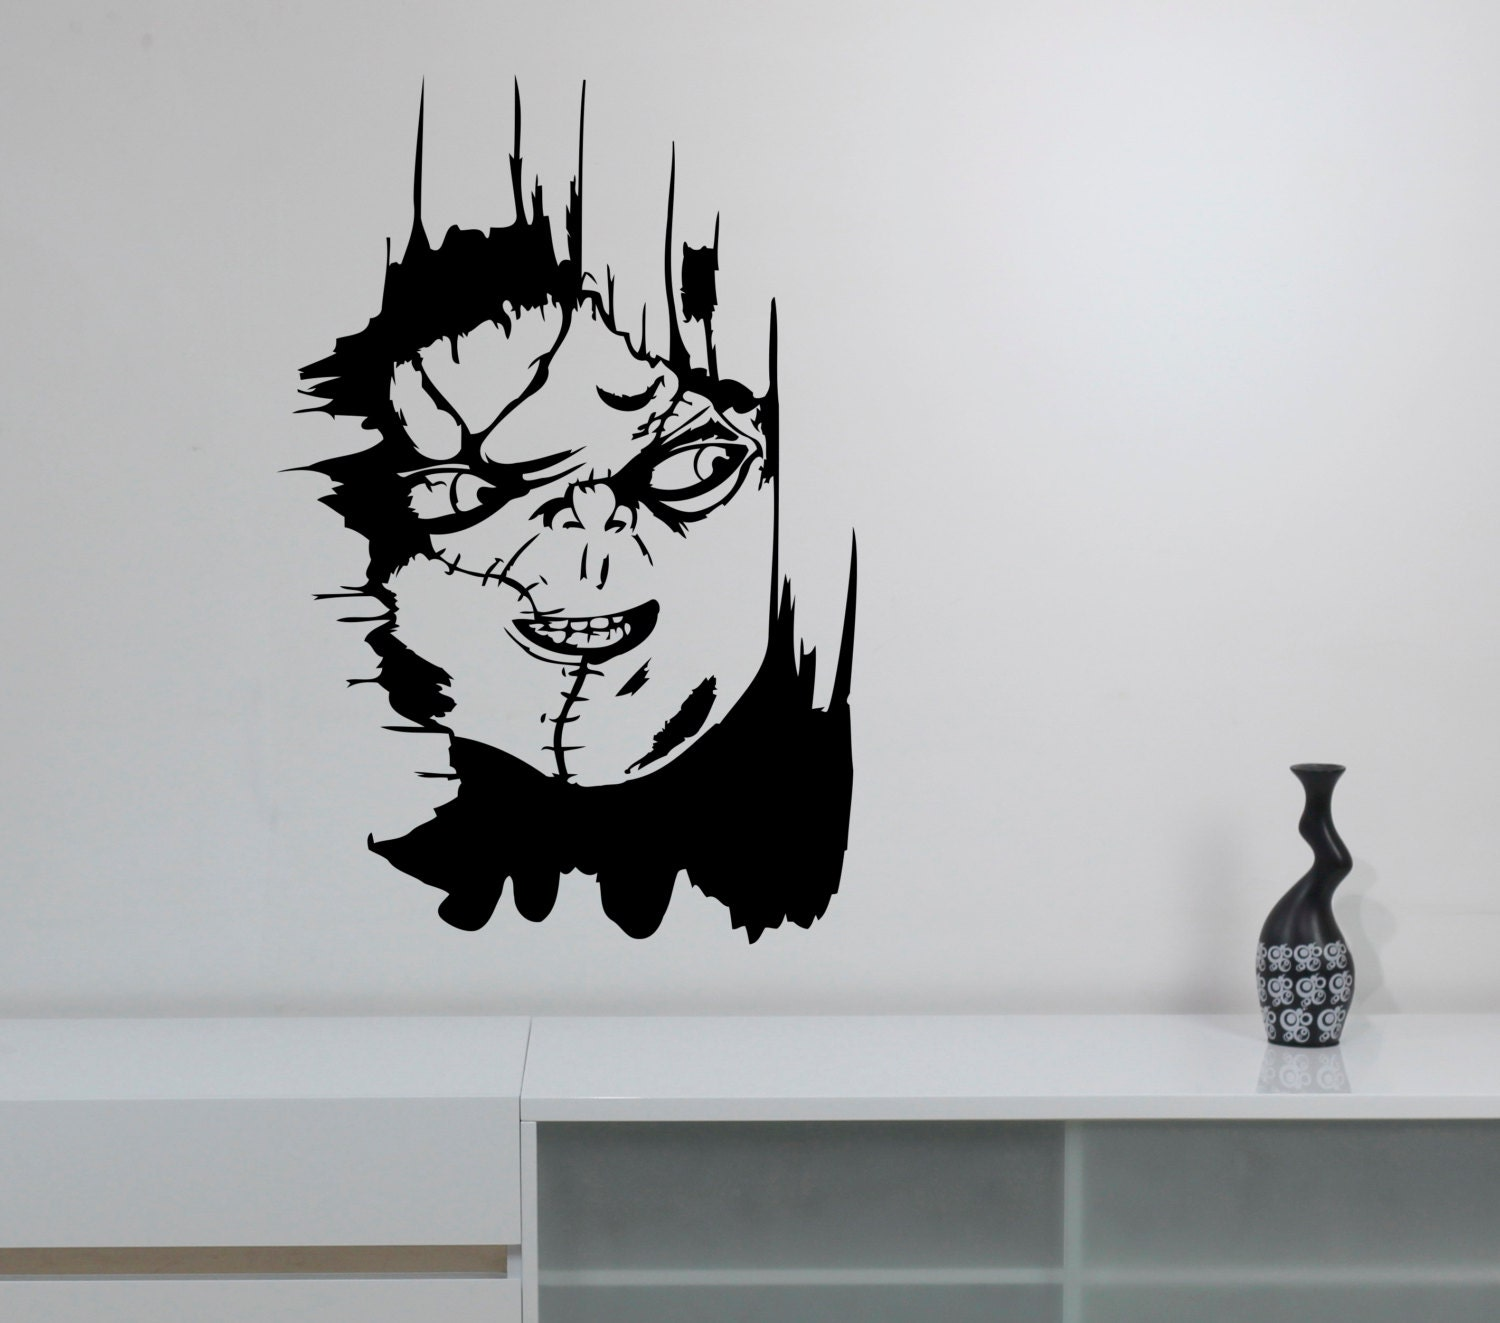 Chucky Play Wall Sticker Removable Vinyl Decal